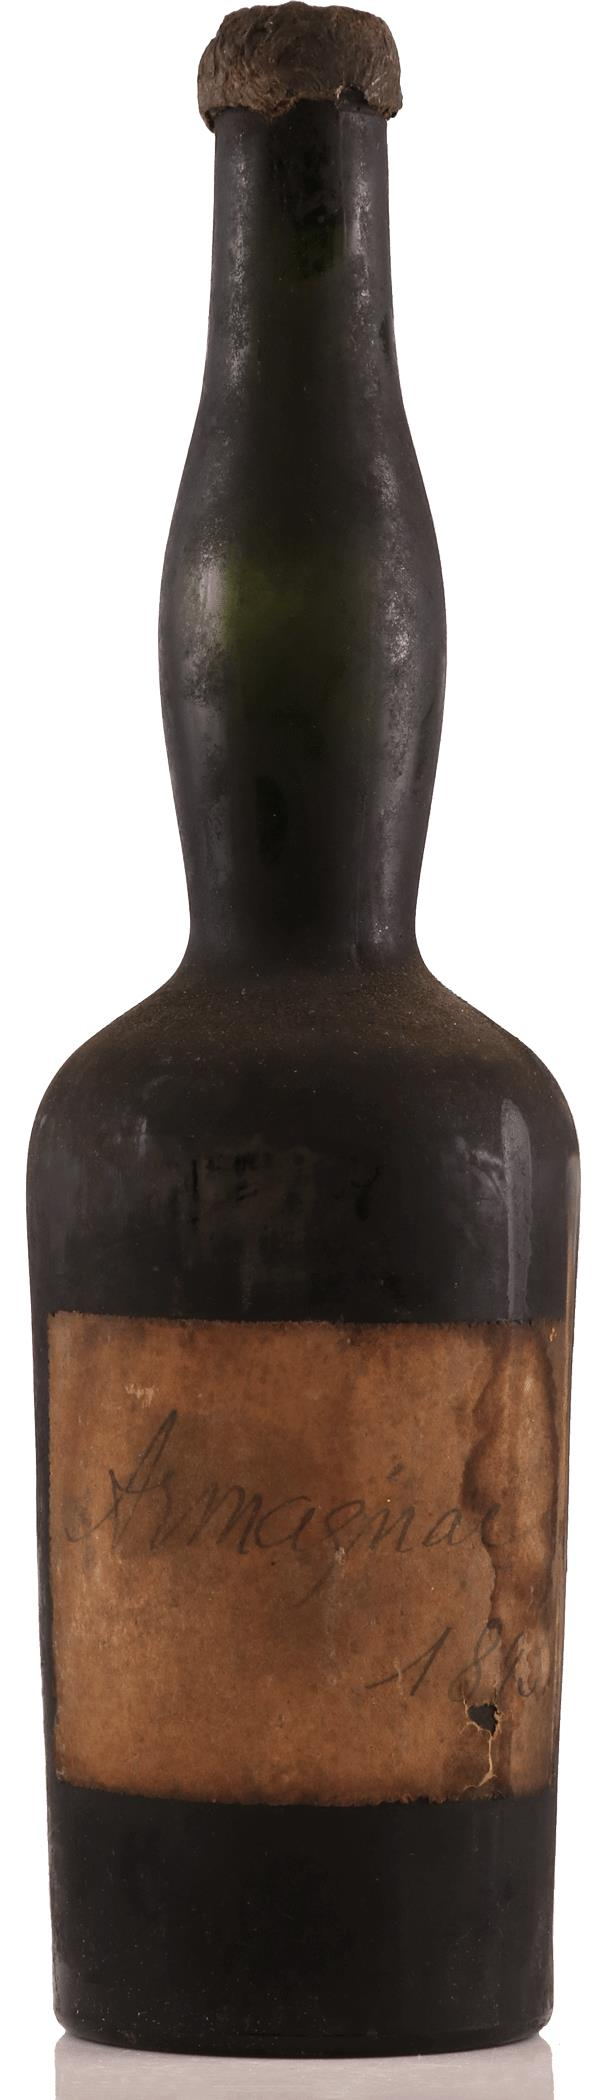 Armagnac 1843 Brand unknown